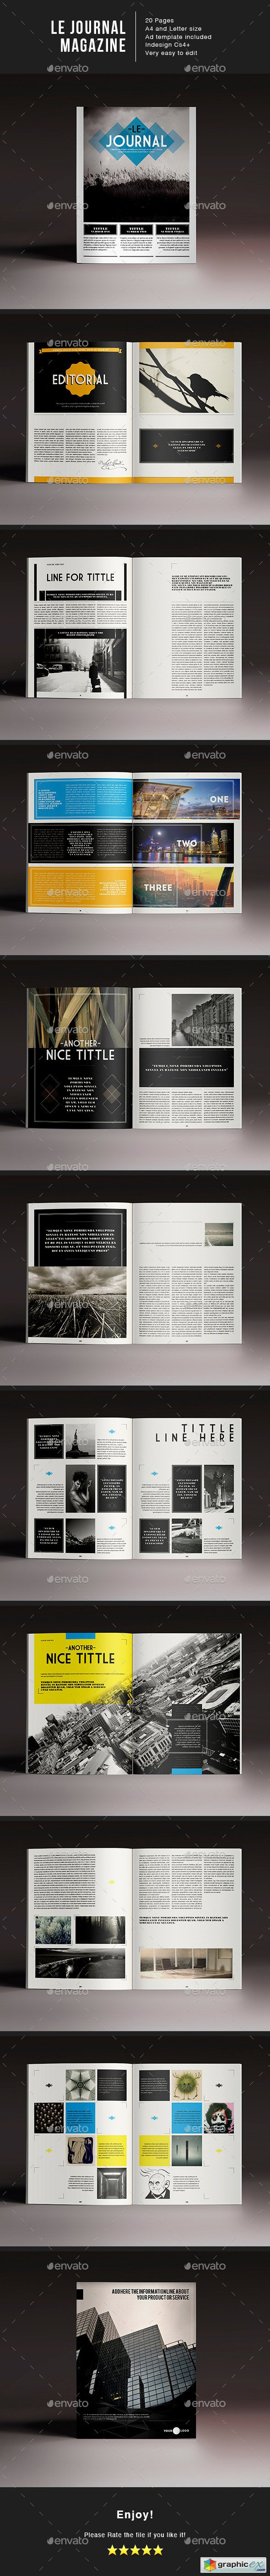 Le journal magazine indesign template free download vector stock image phot - Design journal magazine ...